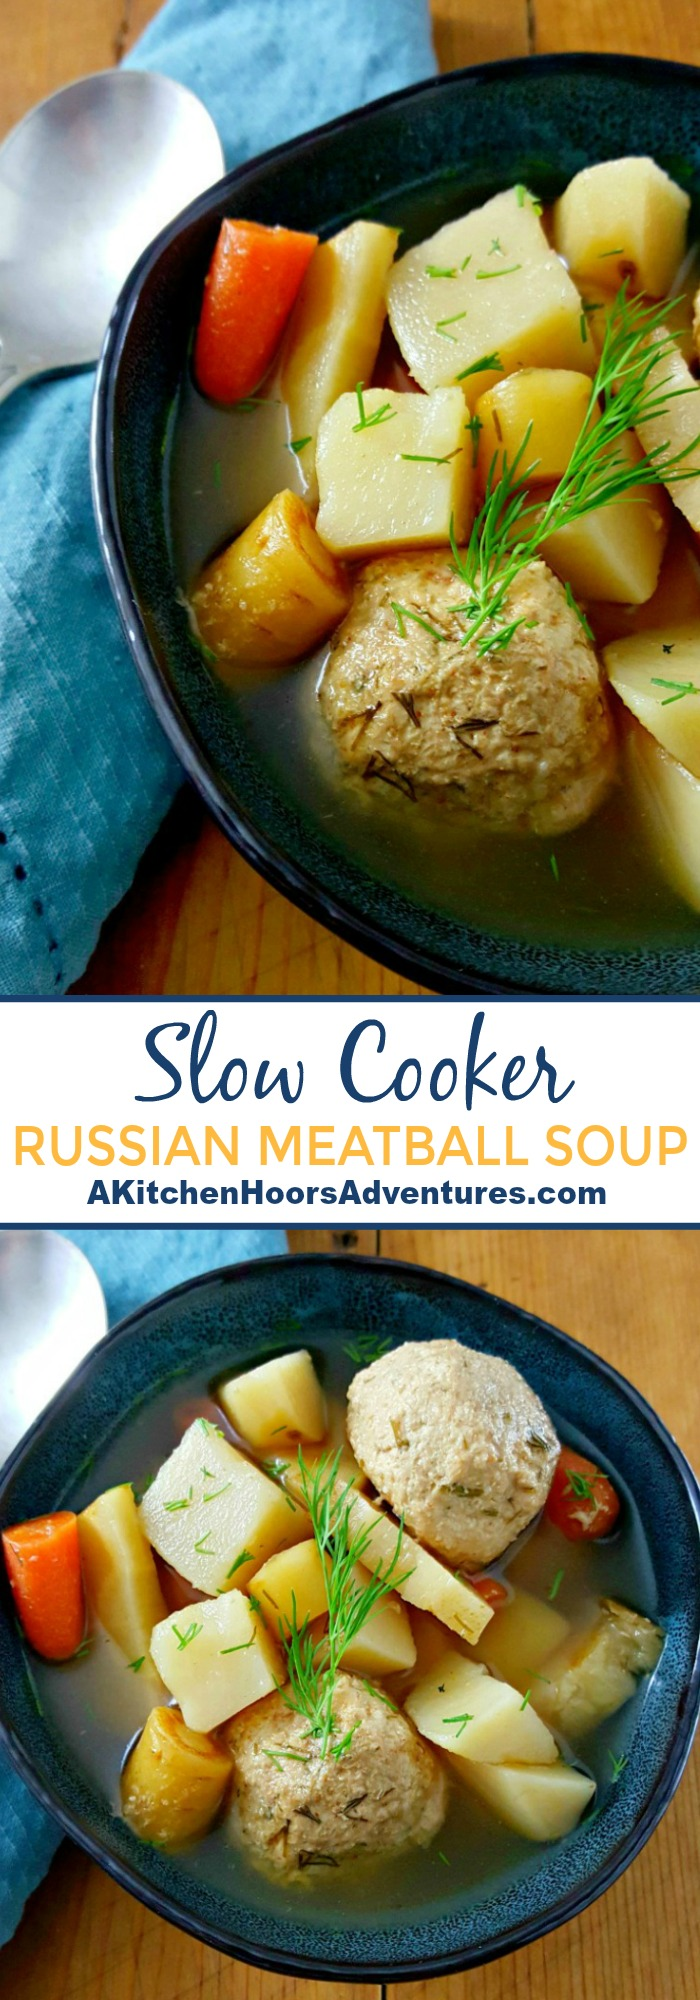 Slow Cooker Russian Meatball Soup is full of vegetable goodness, hearty chicken, and lots of delicious dill flavor!